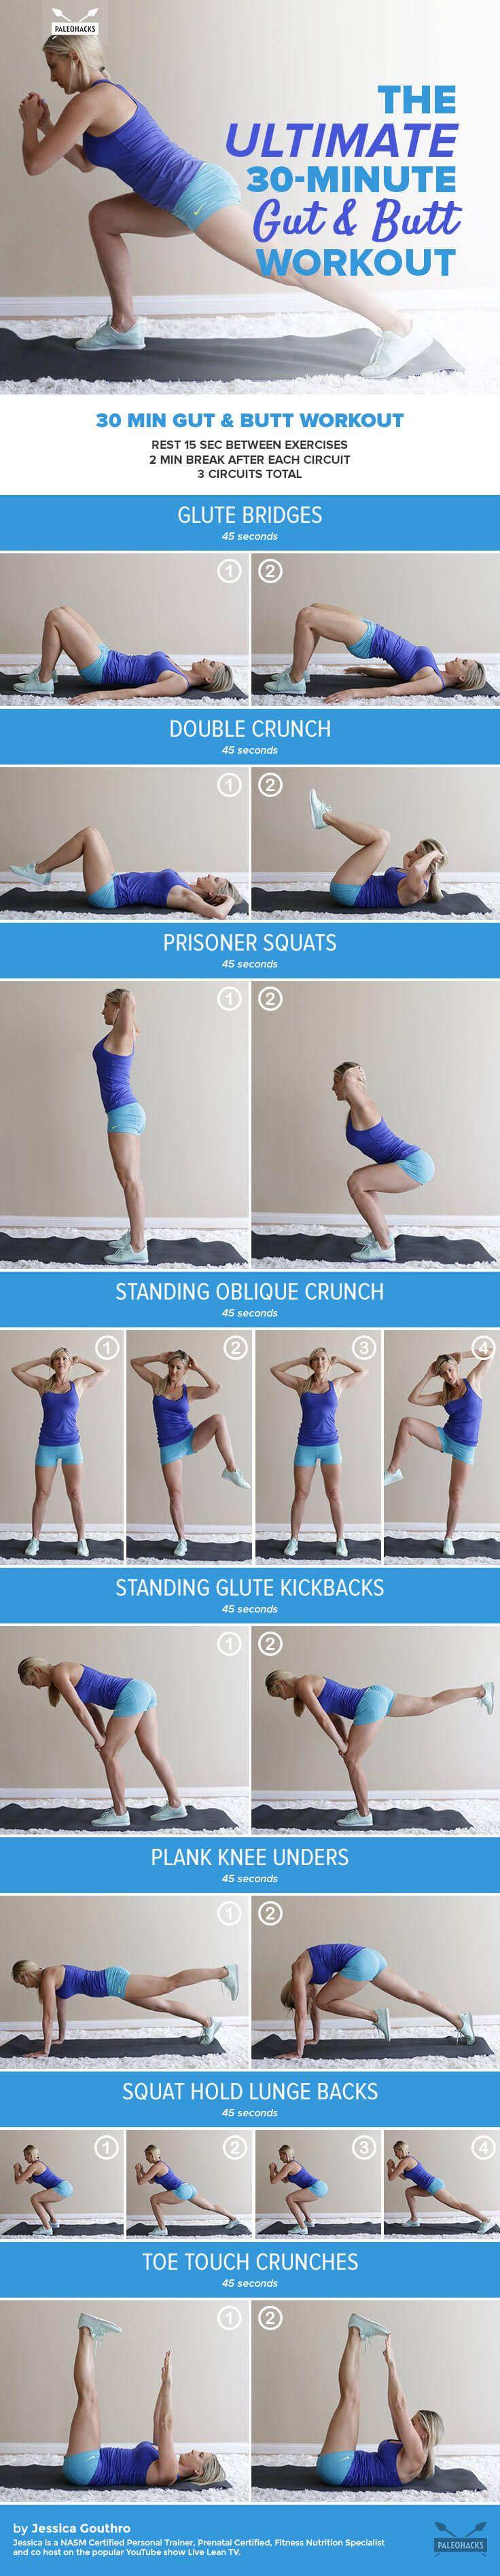 Tone and strengthen your core and rear with this 30-minute gut & butt workout – no equipment necessary! For the full workout, visit us here: http://paleo.co/gutbuttworkout http://amzn.to/2s1tGlK